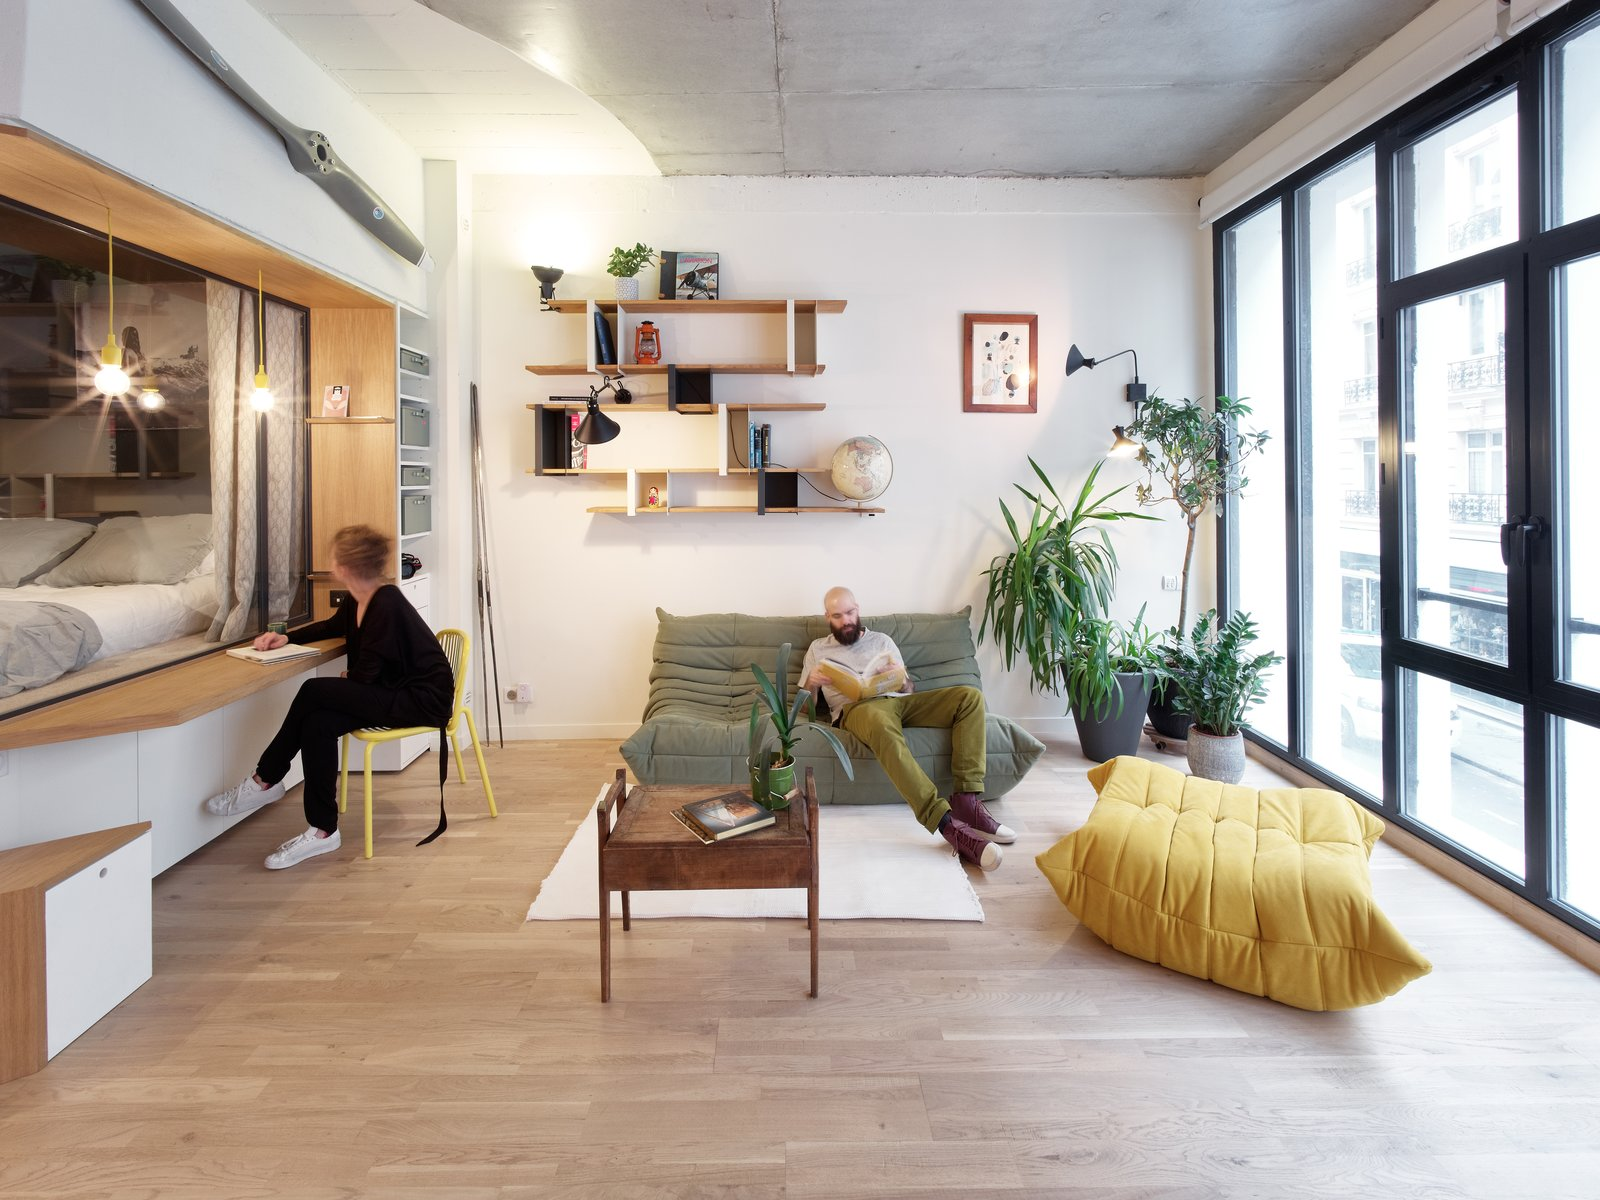 Living, Sofa, Lamps, Desk, Shelves, Light Hardwood, Chair, Coffee Tables, Rug, Pendant, and Wall  Best Living Desk Shelves Photos from This Compact Home in Paris Has Nearly 70 Concealed Closets